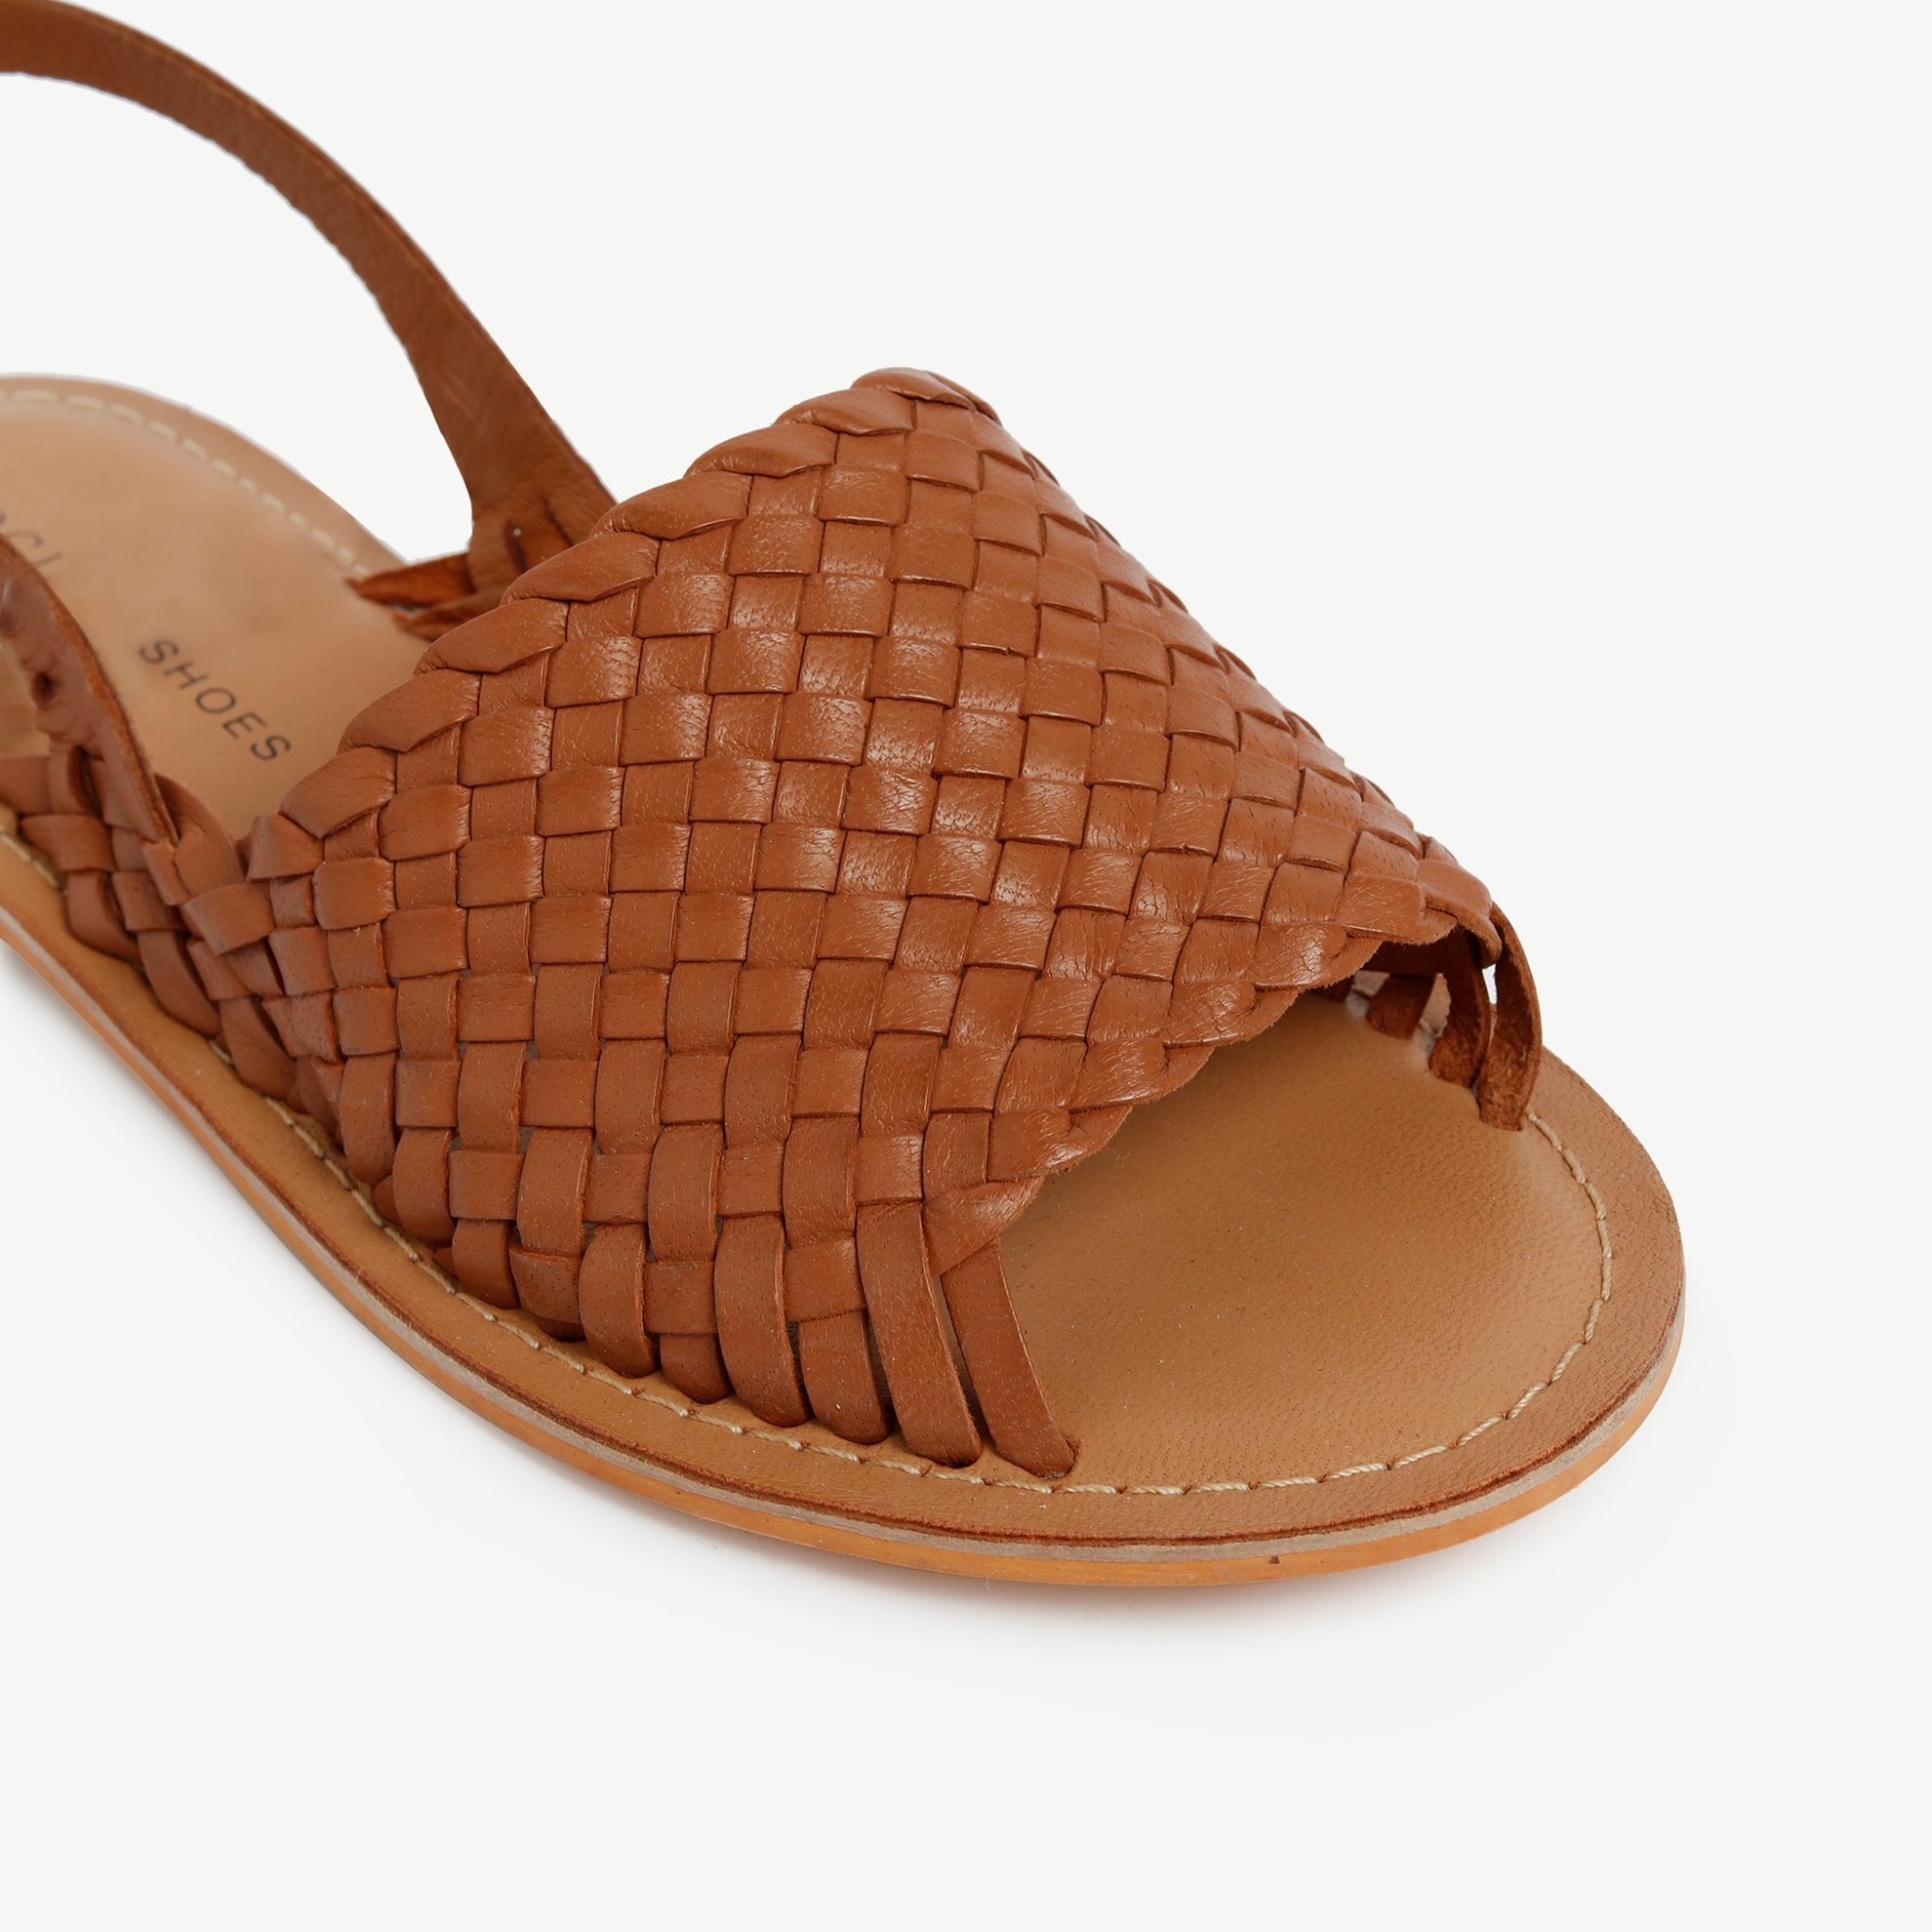 ed64d4a0d5a18 Woven Leather Sandal  Woven Leather Sandal ...